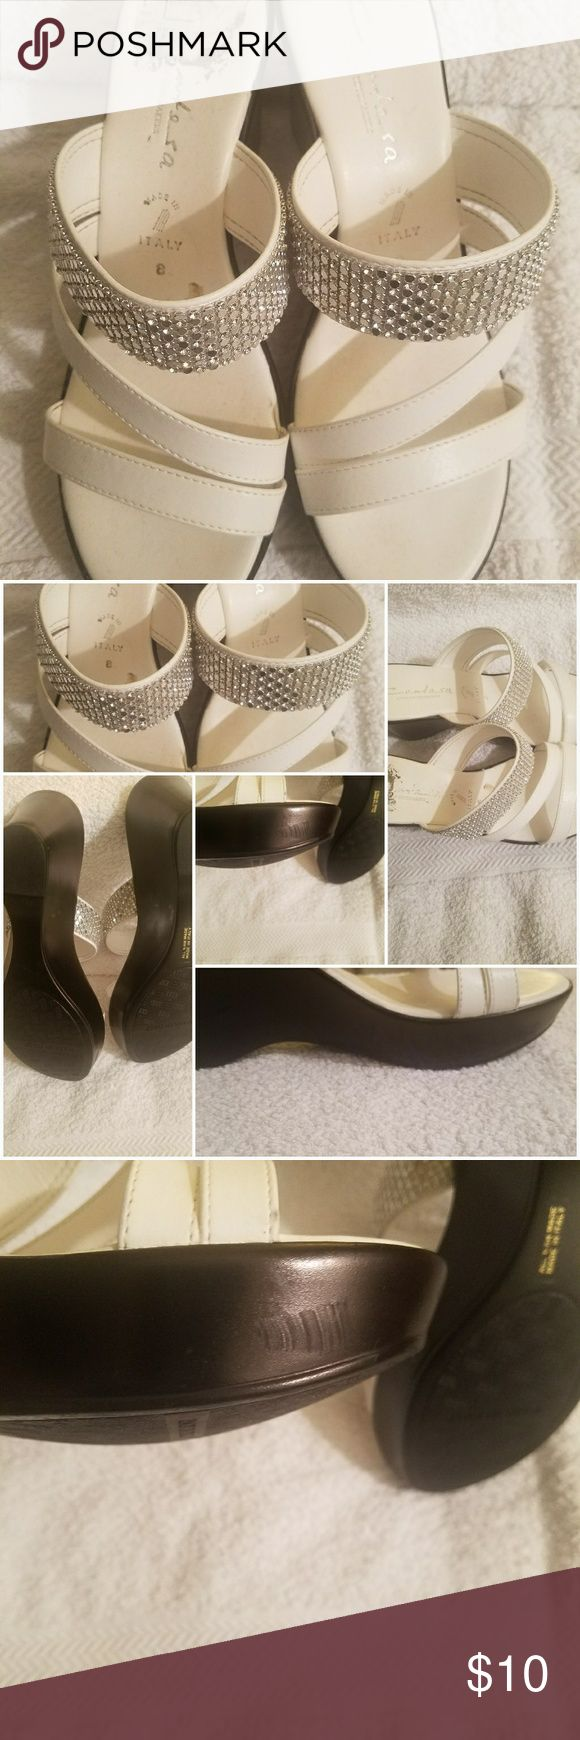 White wedge sandals Black and white wedge sandals with a bit of bling. Made for summer and for spring. Or, for just about anything. They have been worn and do have a scuff as shown. Very comfortable. (corny, I know). Shoes Sandals